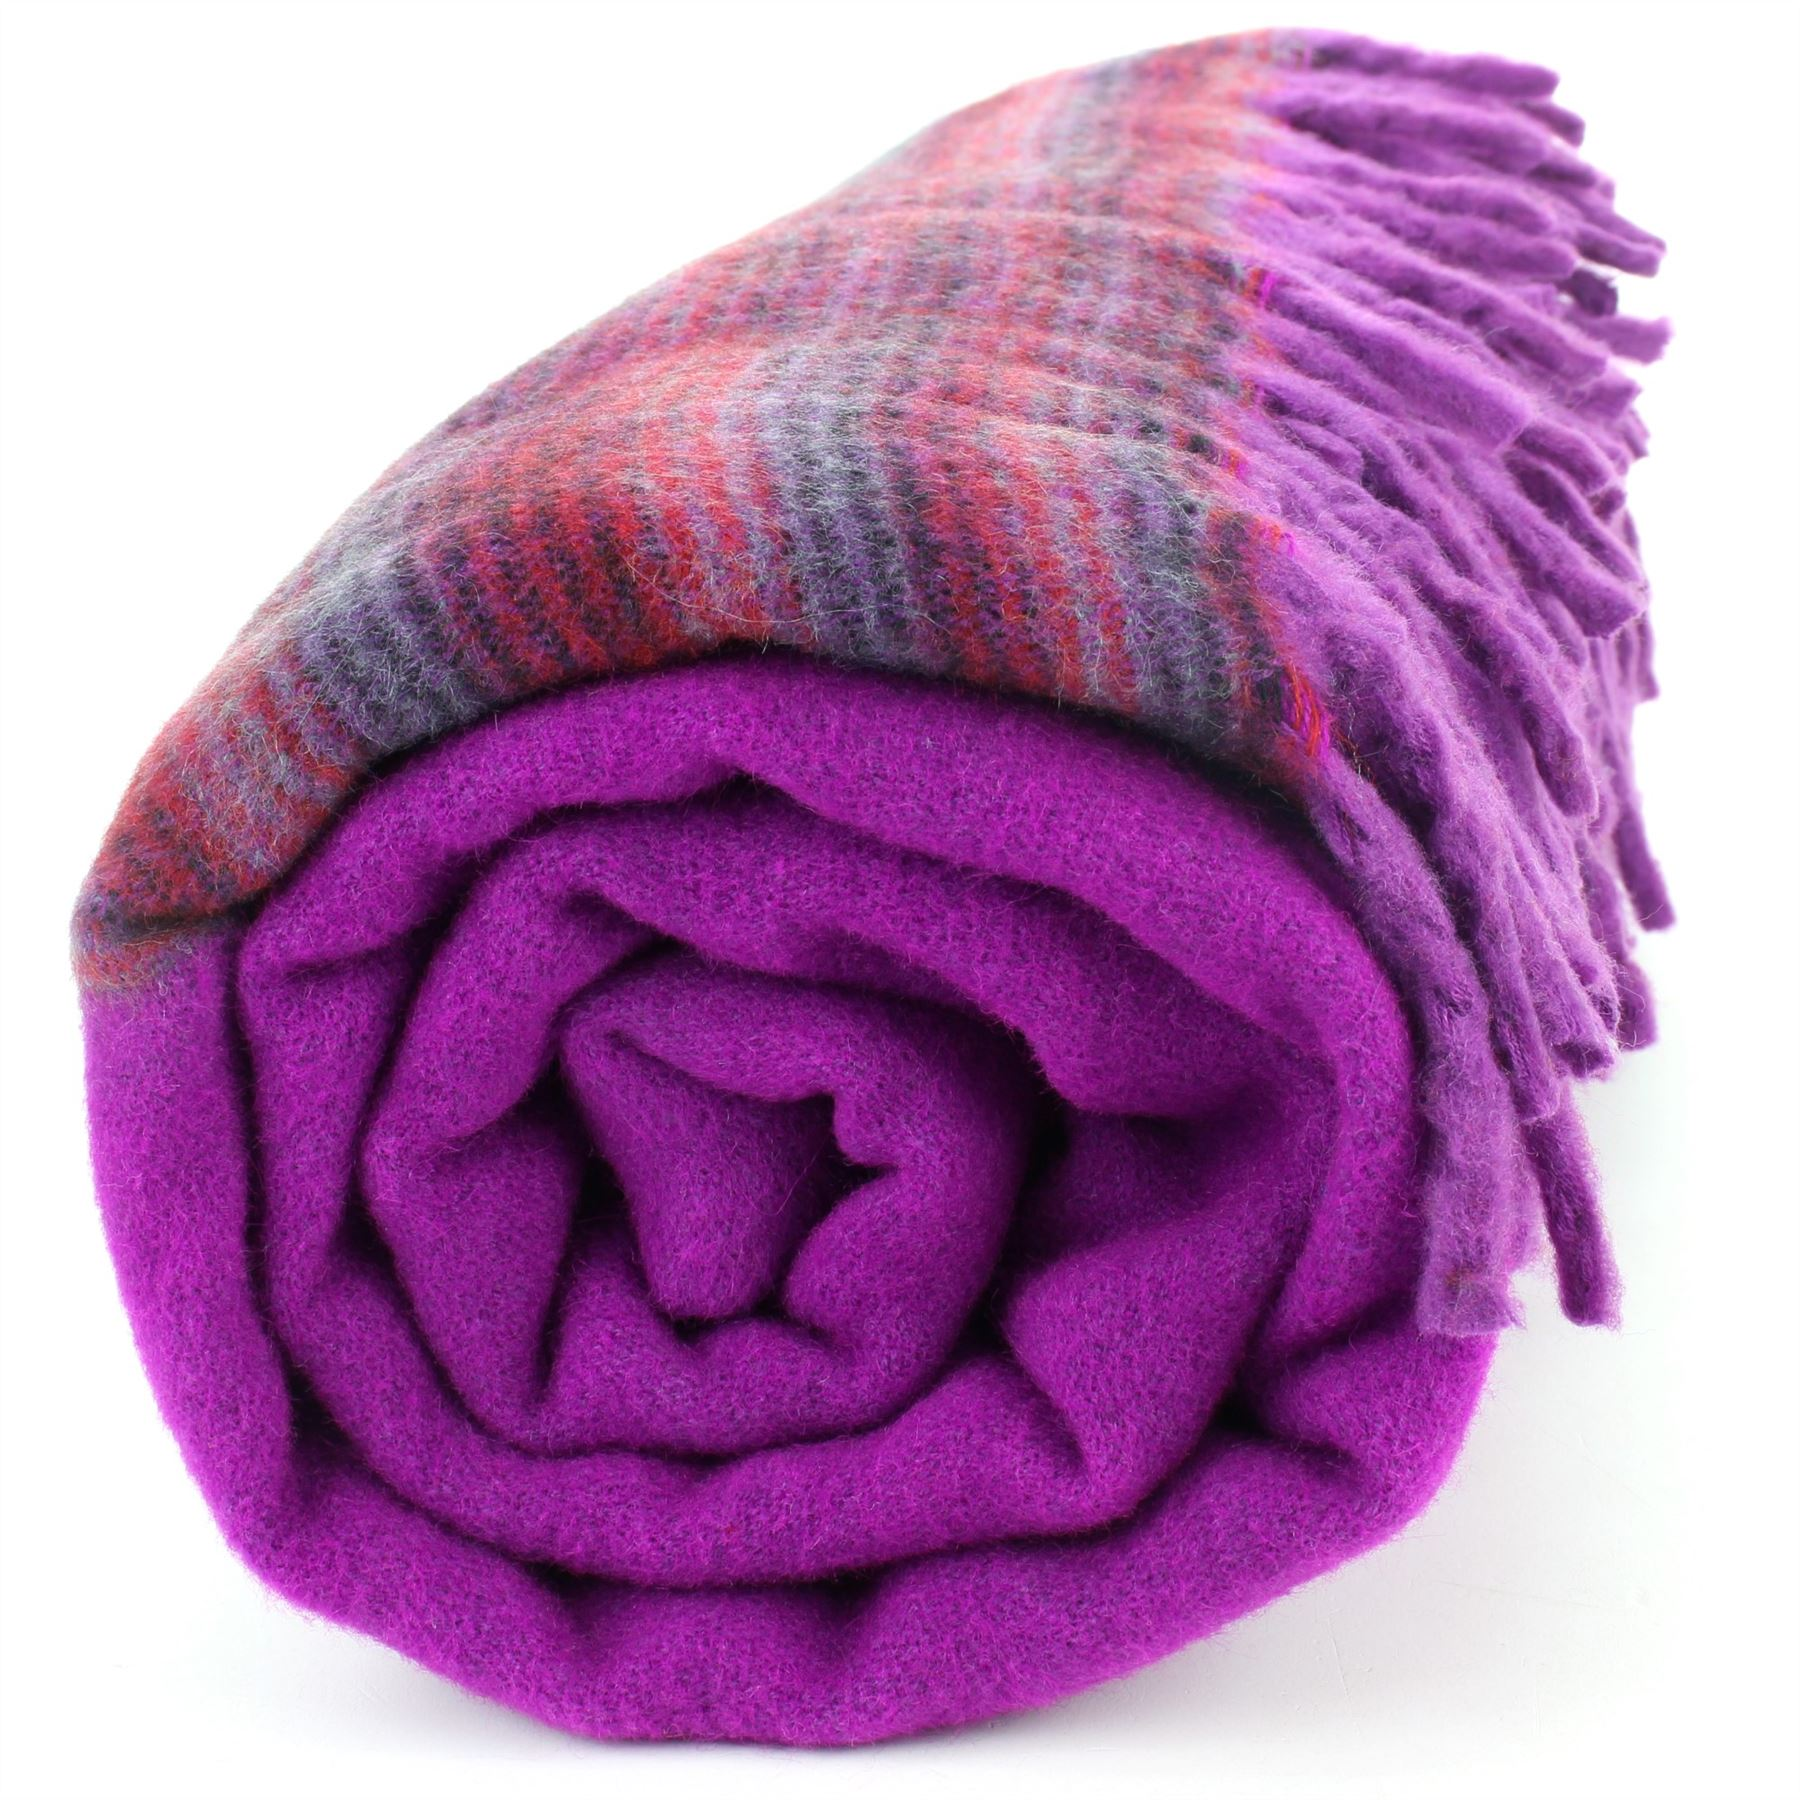 Yak Wool Blanket Shawl Wrap Throw Finest Softest Tibet Handloom Travel